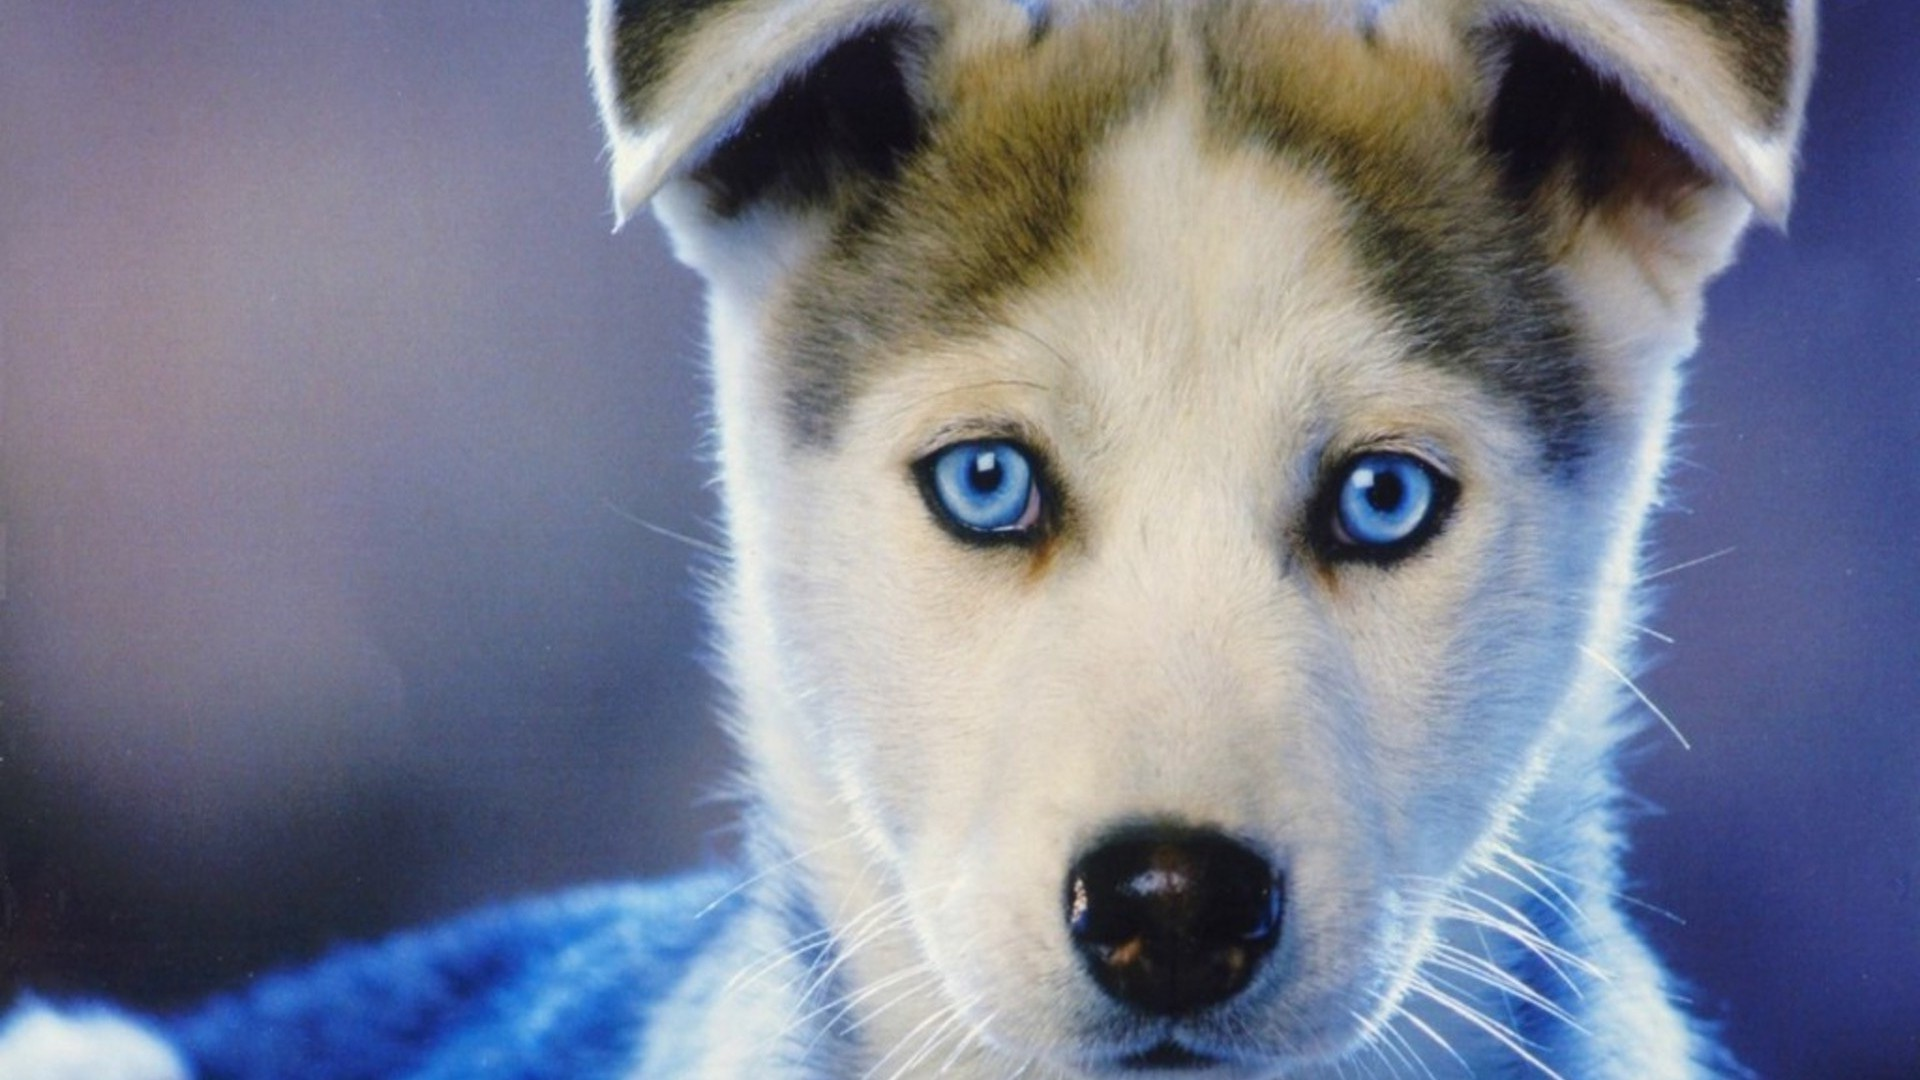 dog, Siberian Husky, Puppies, Animals, Baby Animals, Face, Closeup, Blue  Eyes, Nature, Muzzles Wallpapers HD / Desktop and Mobile Backgrounds